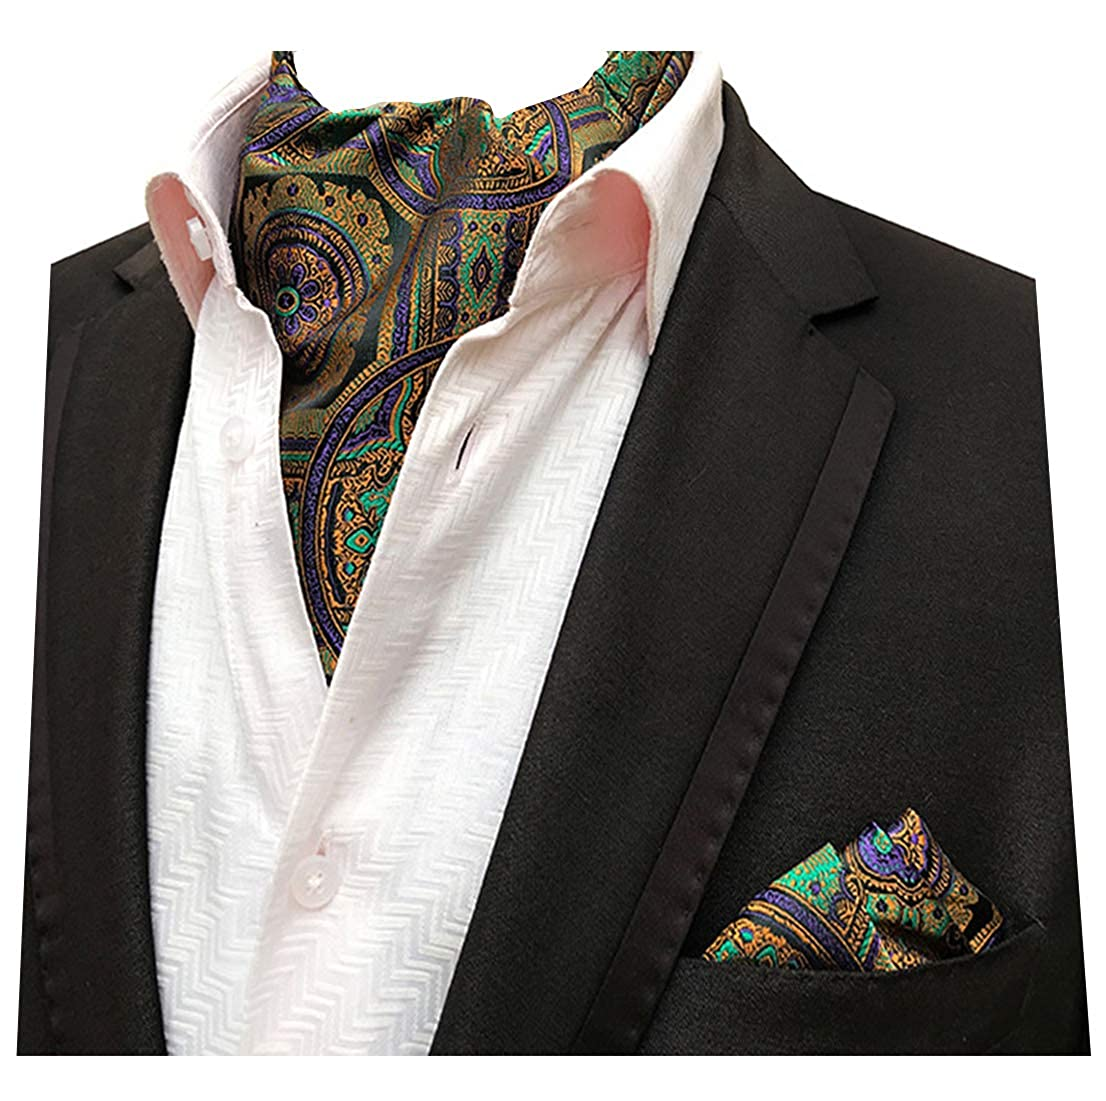 39e8df410f2e MENDENG Ascot Ties and Pocket Square Sets for Men Paisley Floral Cravat  Gold at Amazon Men's Clothing store: